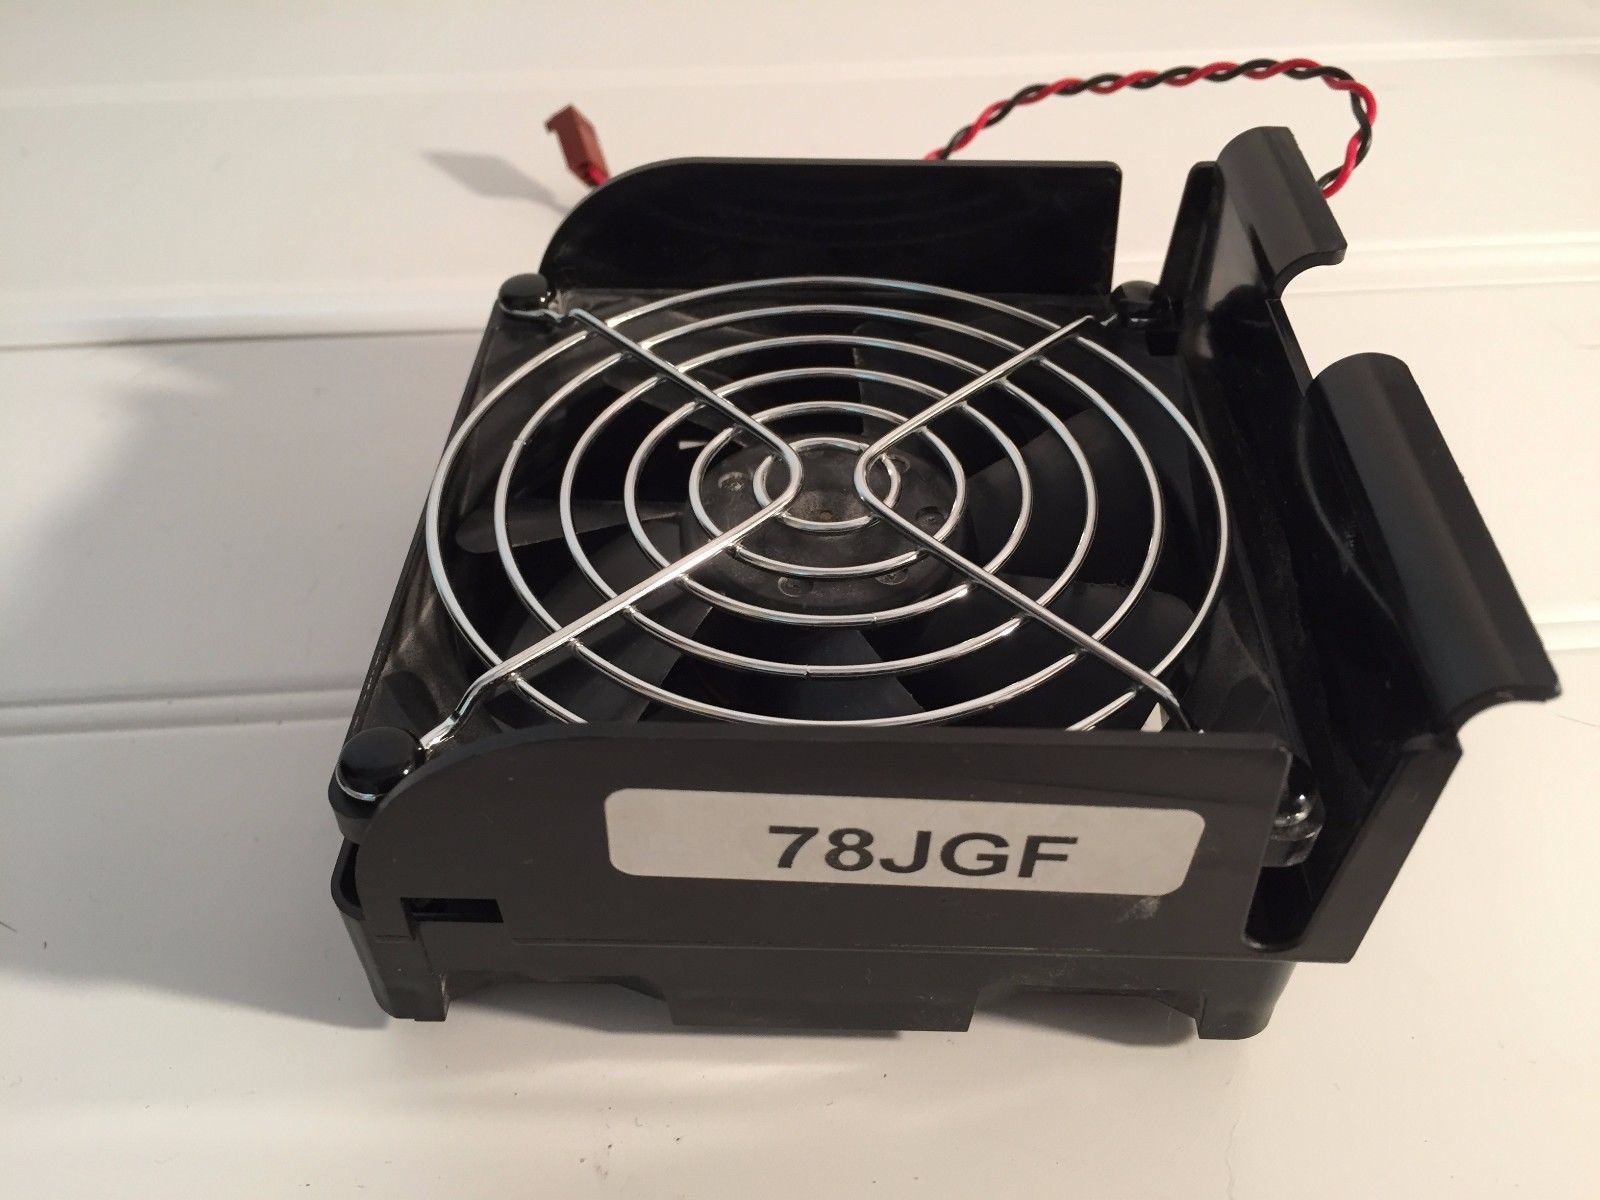 NMB 3610KL 04W-B67 Brushless Fan Dell 20401 and 19 similar items